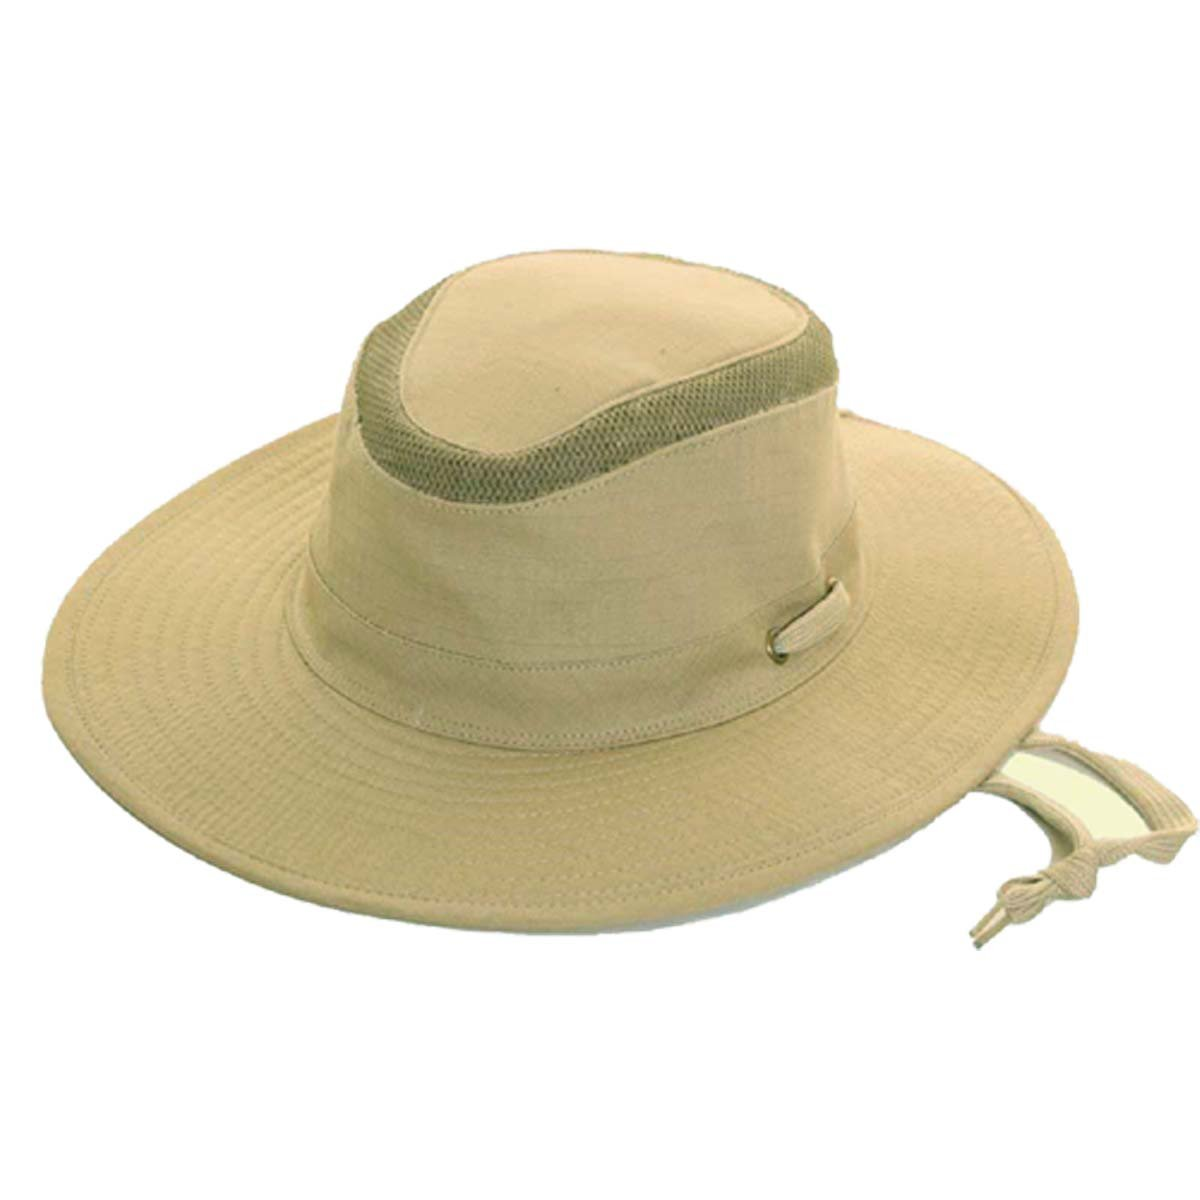 be! Mesh Top Sun Hat Extra Wide Brim Hat with Chin Strap by Earland Brothers